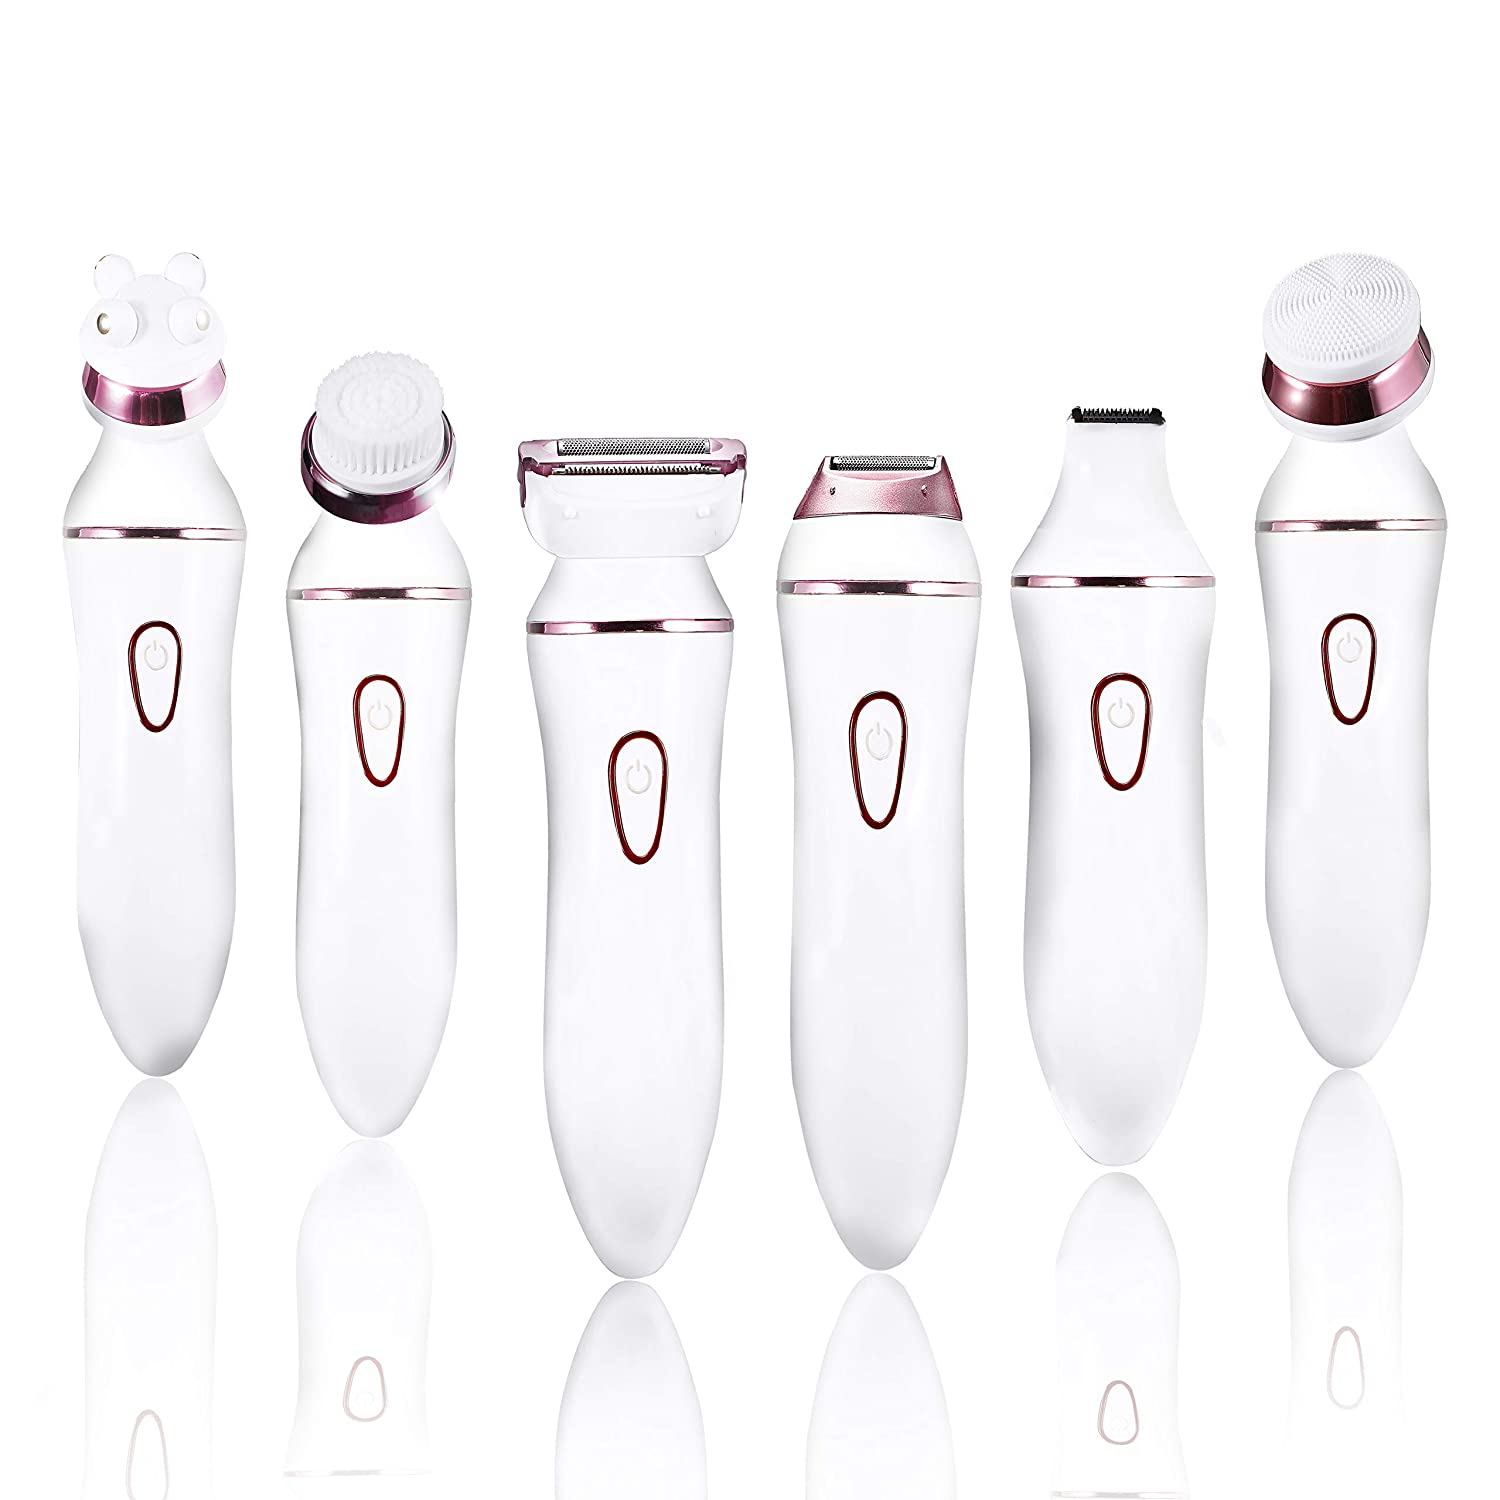 Ladies Electric Shaver, 6 in 1 Rechargeable Facial Razor, Bikini Trimmer, Face Cleaning Brush - Wet Dry Use, 6 Interchangeable Heads for Precise Trimming Remover for Legs, Armpit vimc